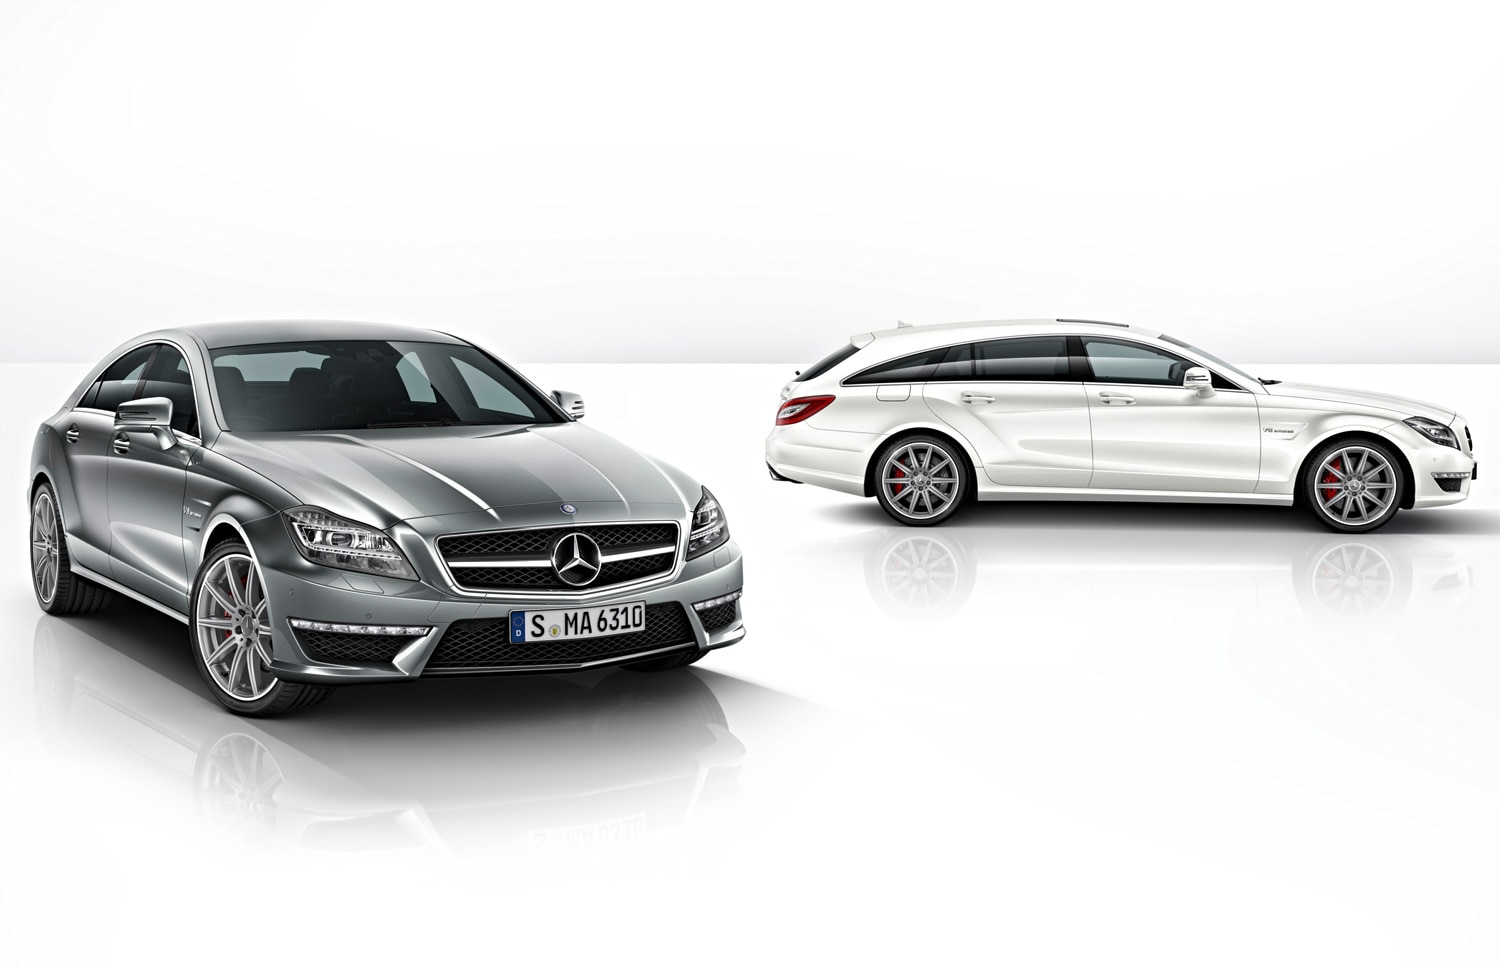 2014 Mercedes Benz CLS63 AMG Sedan And Shooting Brake1